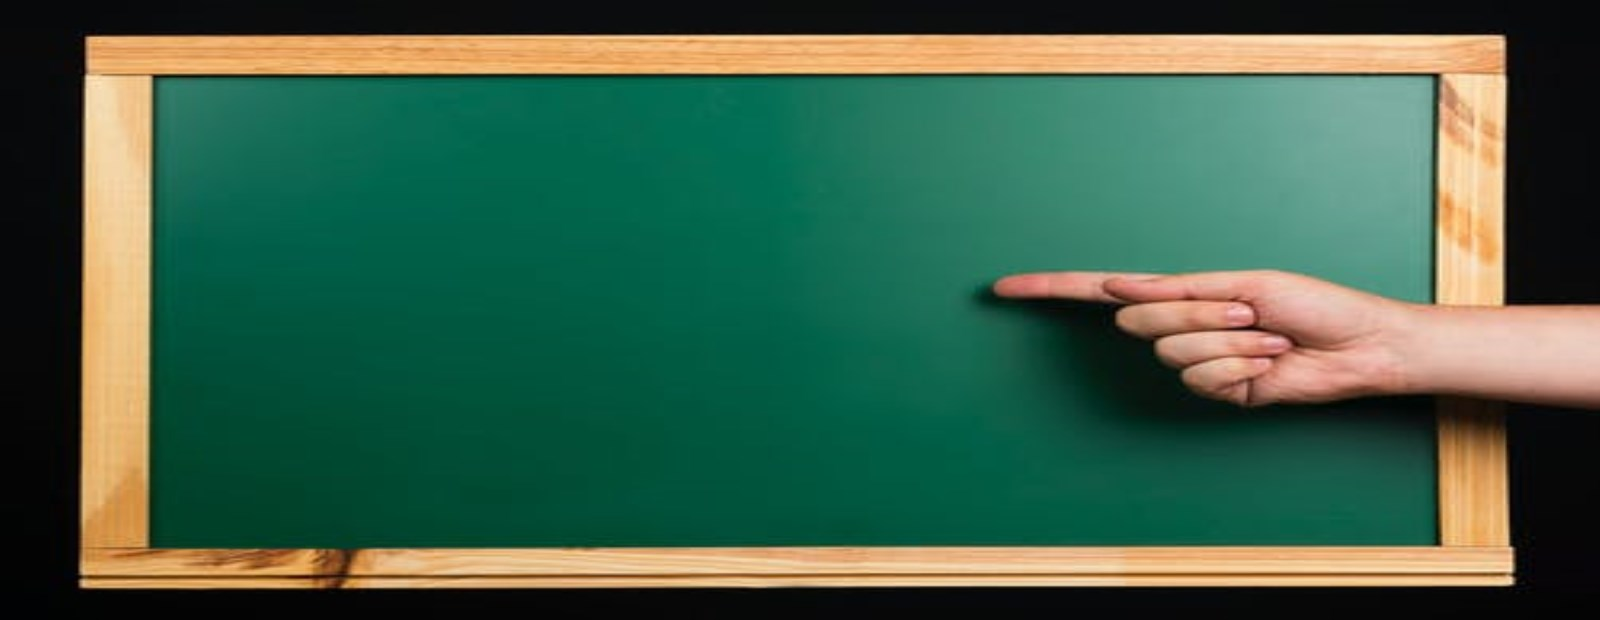 chalkboard with hand pointing at writing